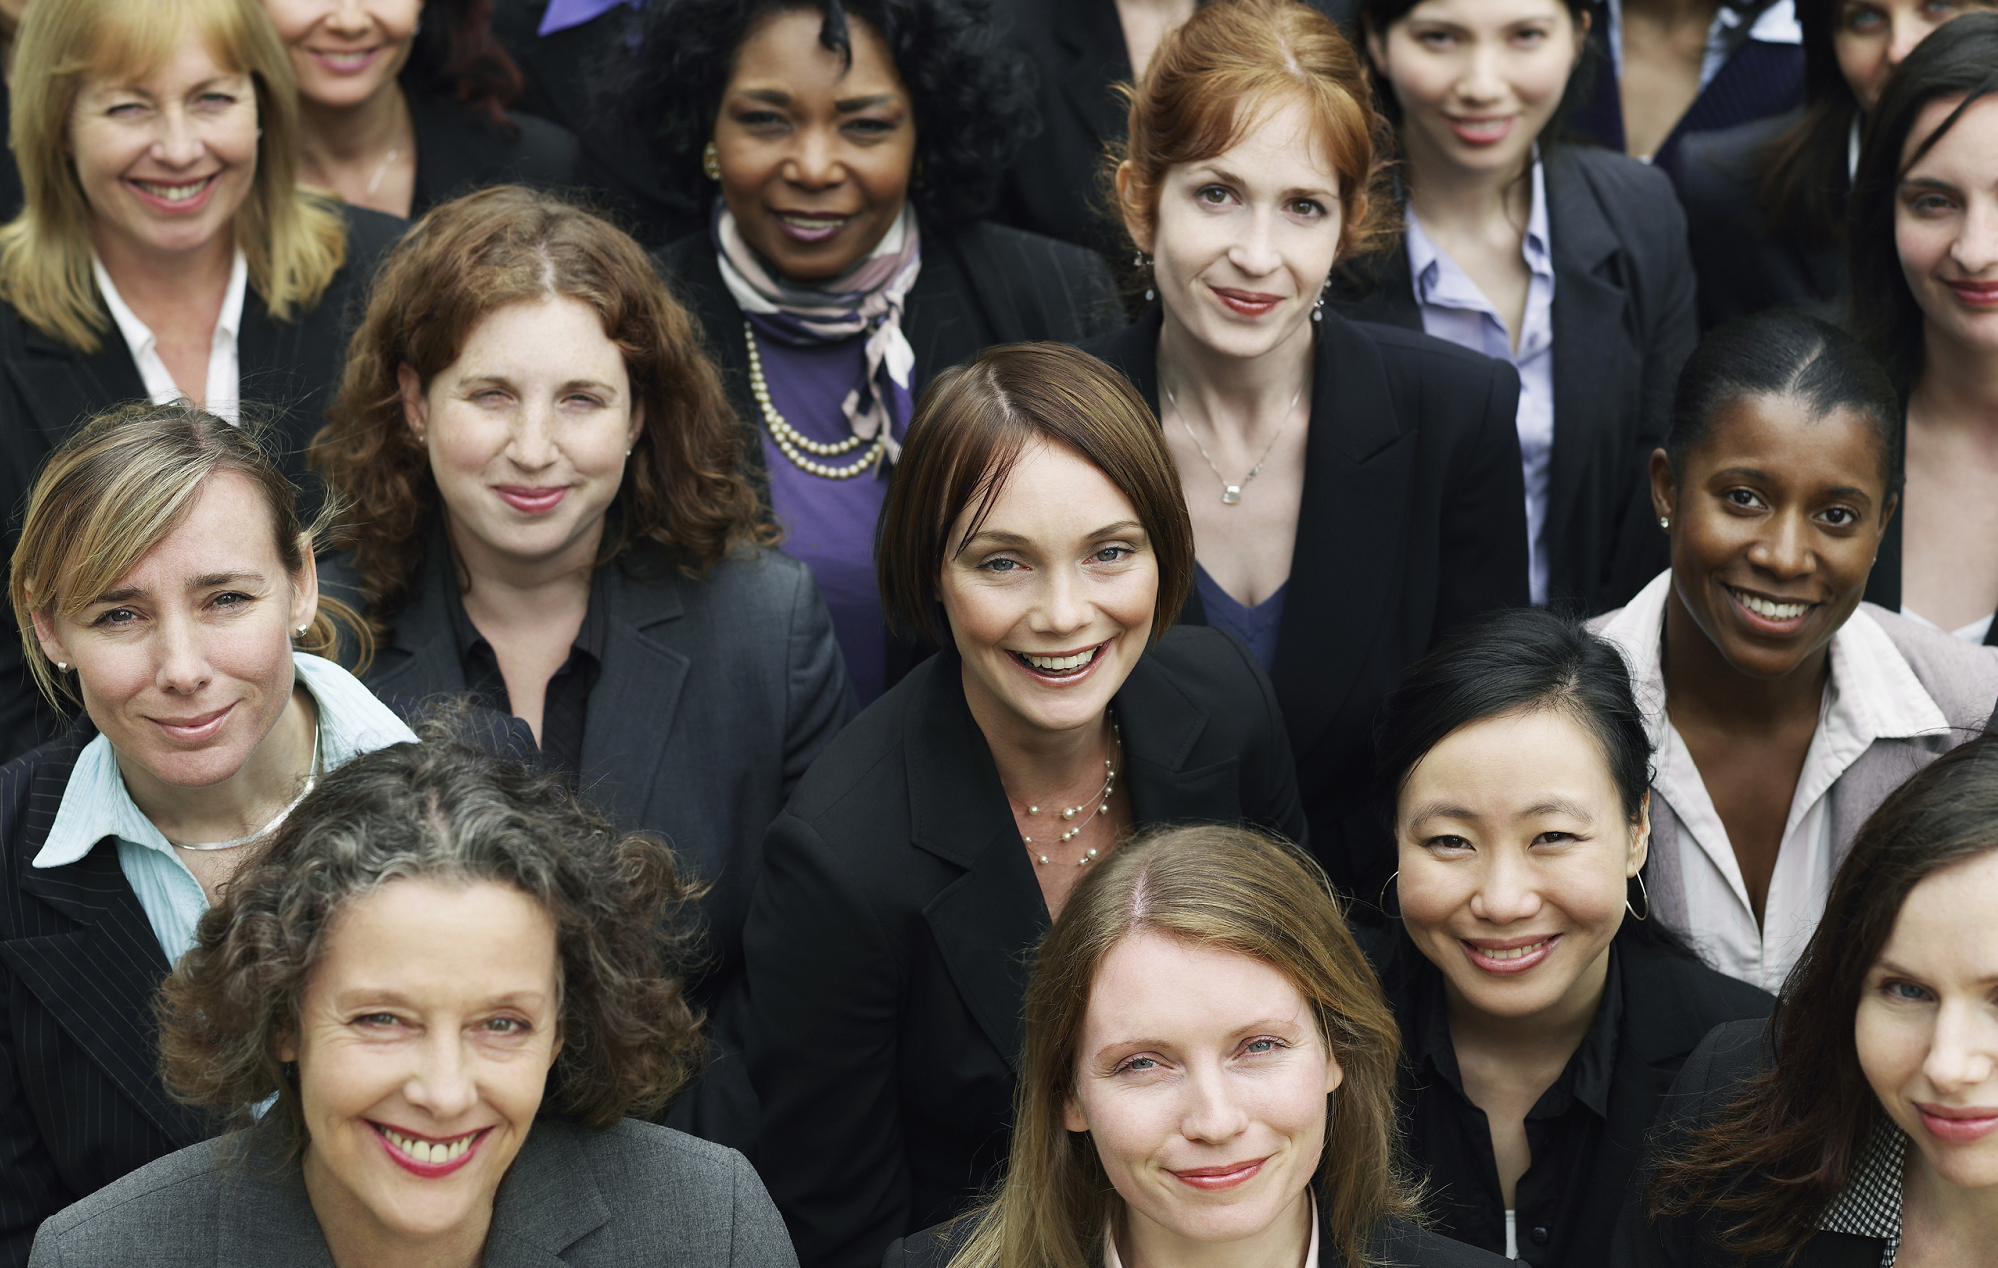 Group of women superintendents